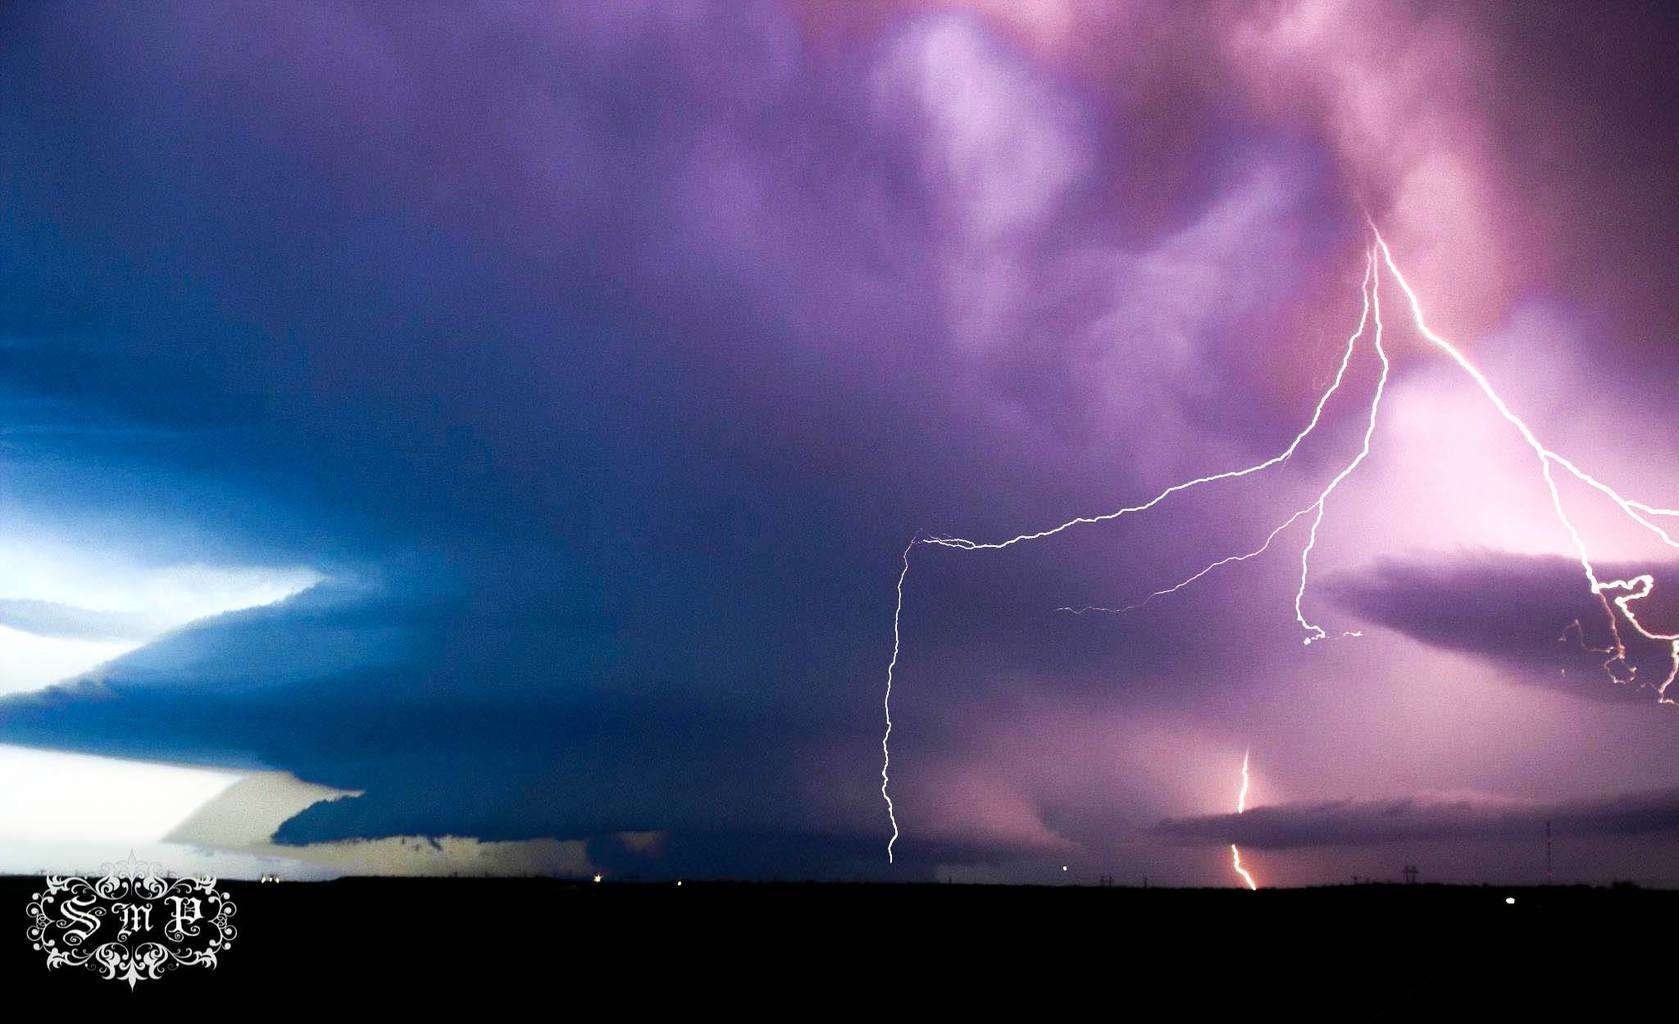 April 9, 2012 Taken a few miles East of Quanah, TX... beautiful Structure Great CG Lightning... The Colors are real... Enjoy...